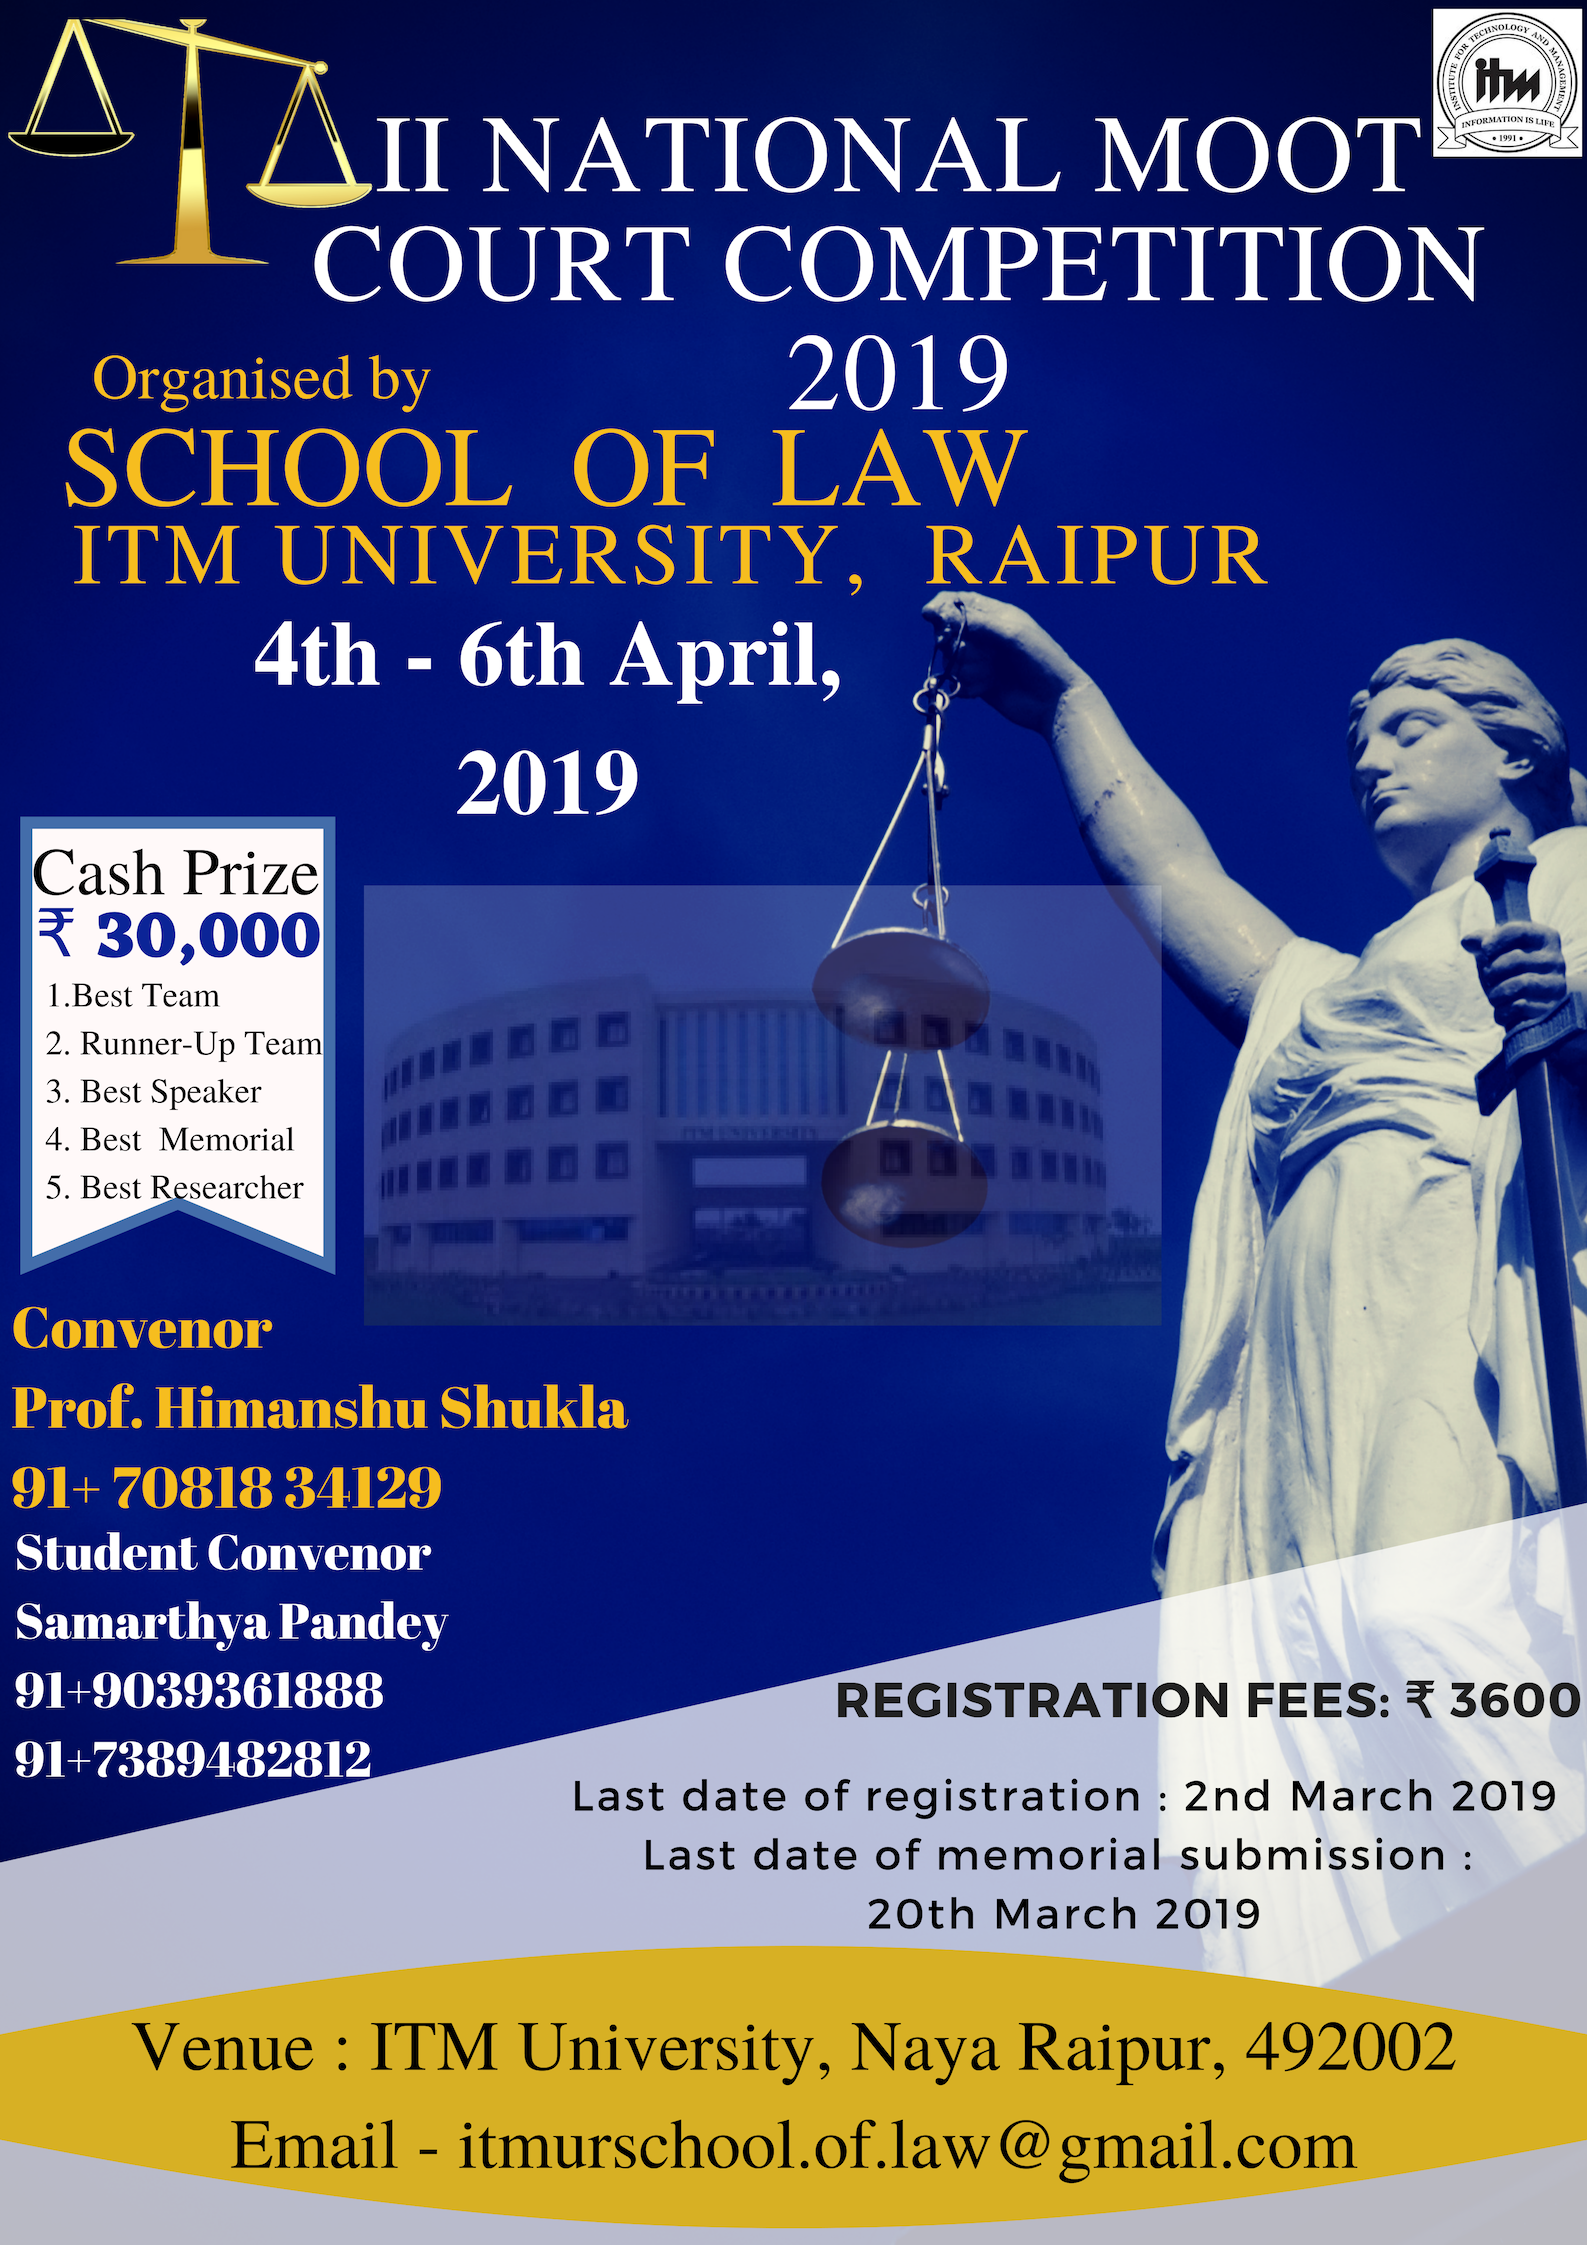 II NATIONAL MOOT COURT COMPETITION, 2019 - ITM University